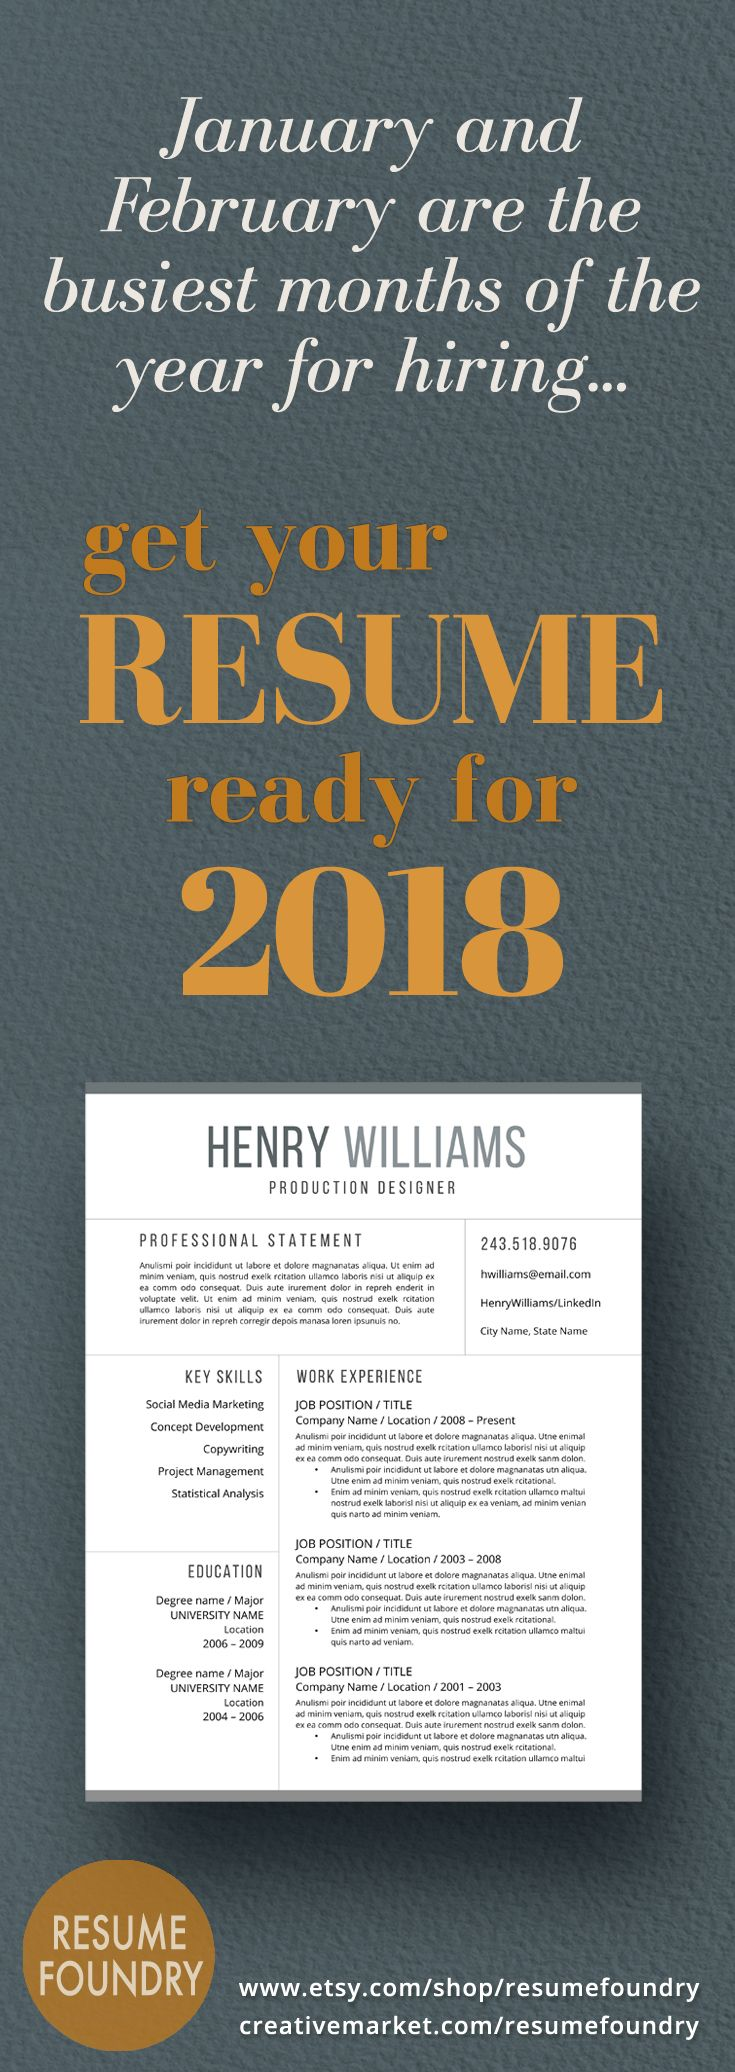 Hiring is about to pick up for January and February - don't wait to update your resume. Instantly download a professionally designed resume template today and be ready for the job openings come New Year.